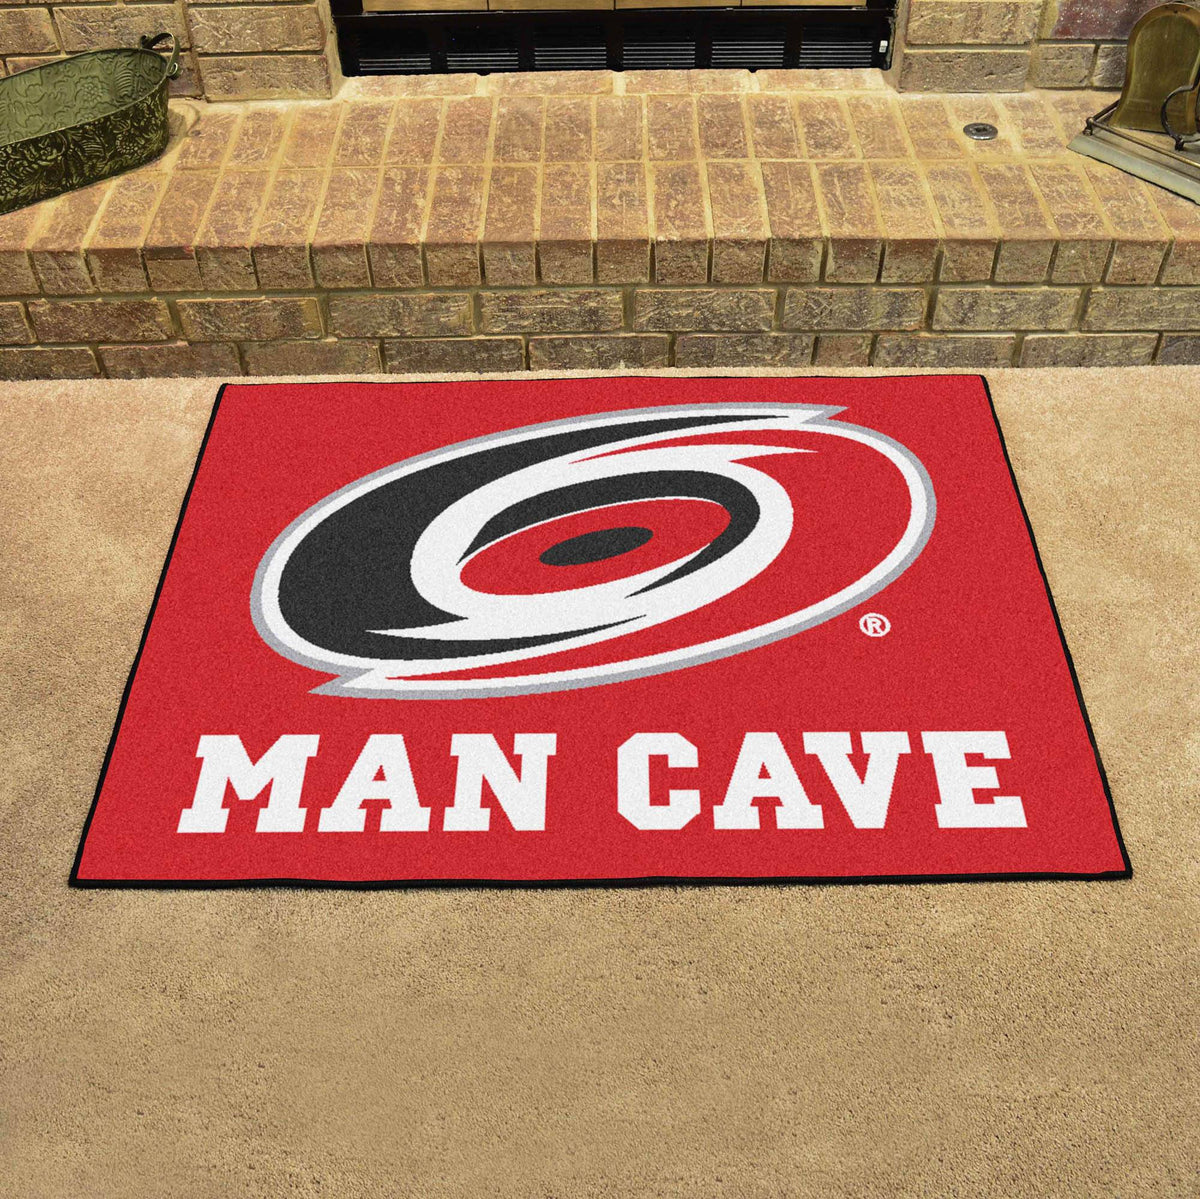 NHL - Man Cave All-Star NHL Mats, Rectangular Mats, Man Cave All-Star Mat, NHL, Home Fan Mats Carolina Hurricanes